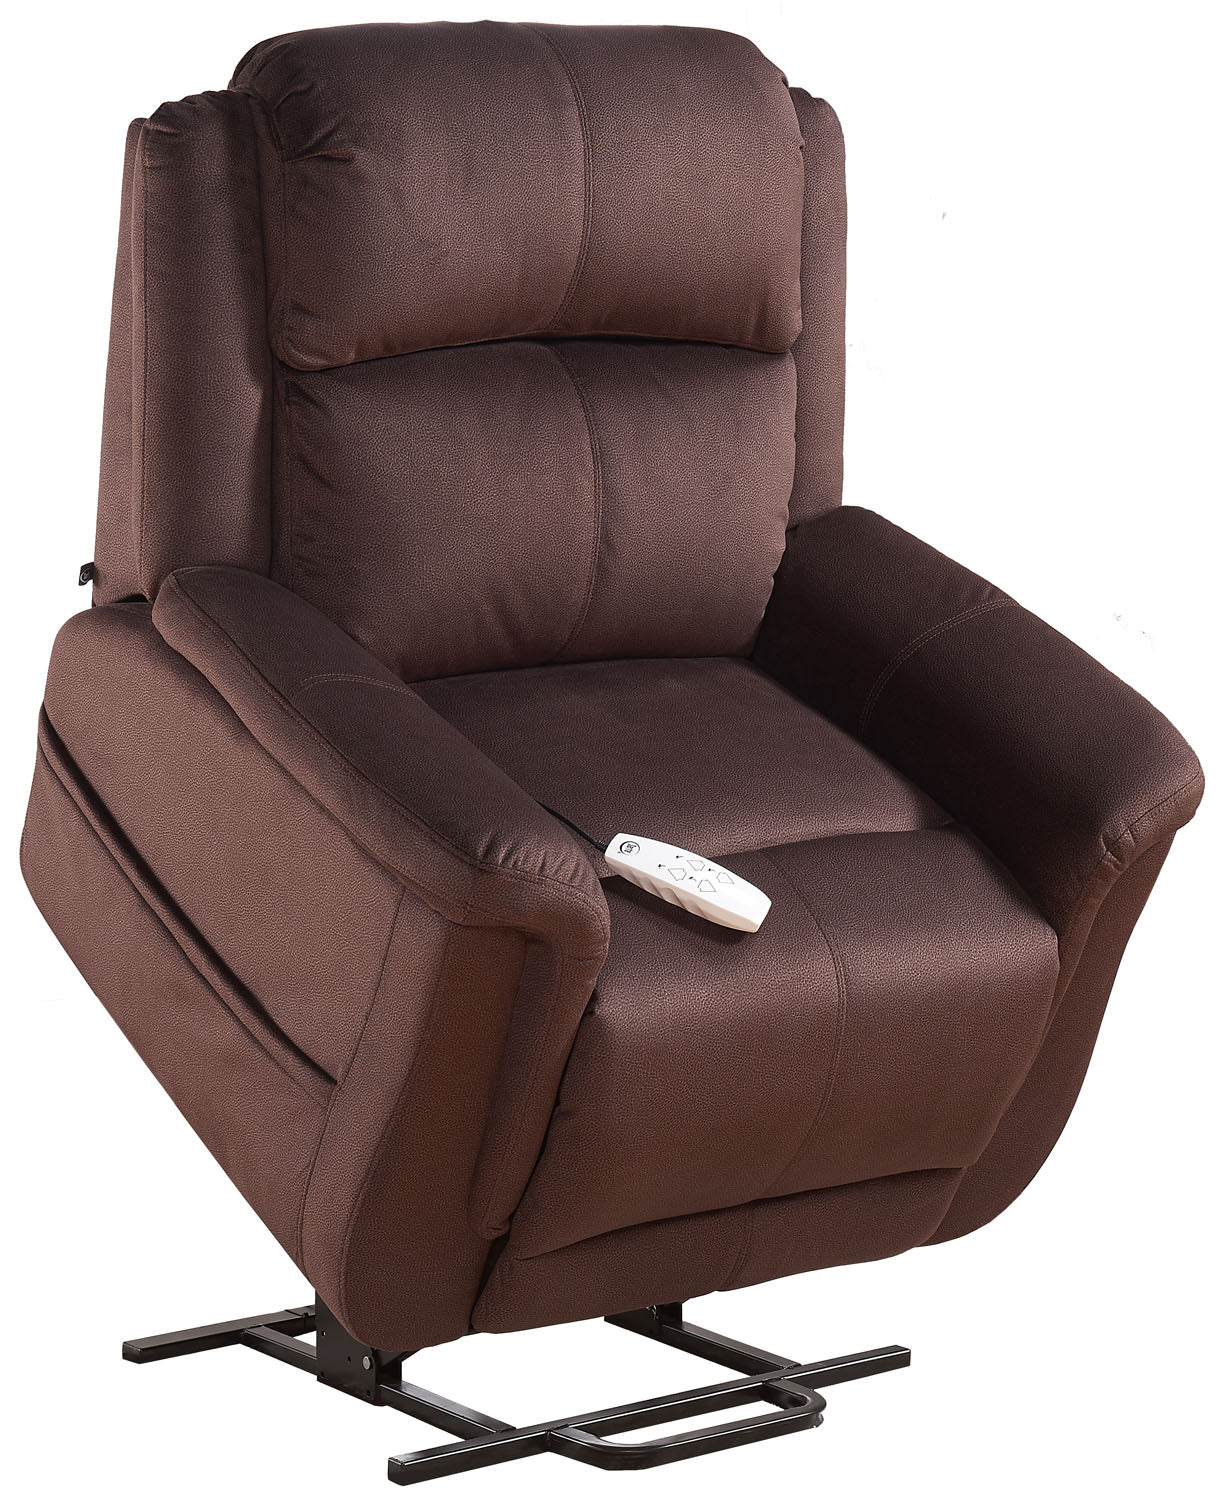 small control dealers that stands chair of serta reclining power you chairs recliner mobility size self golden up lift under modern full elevating pride remote